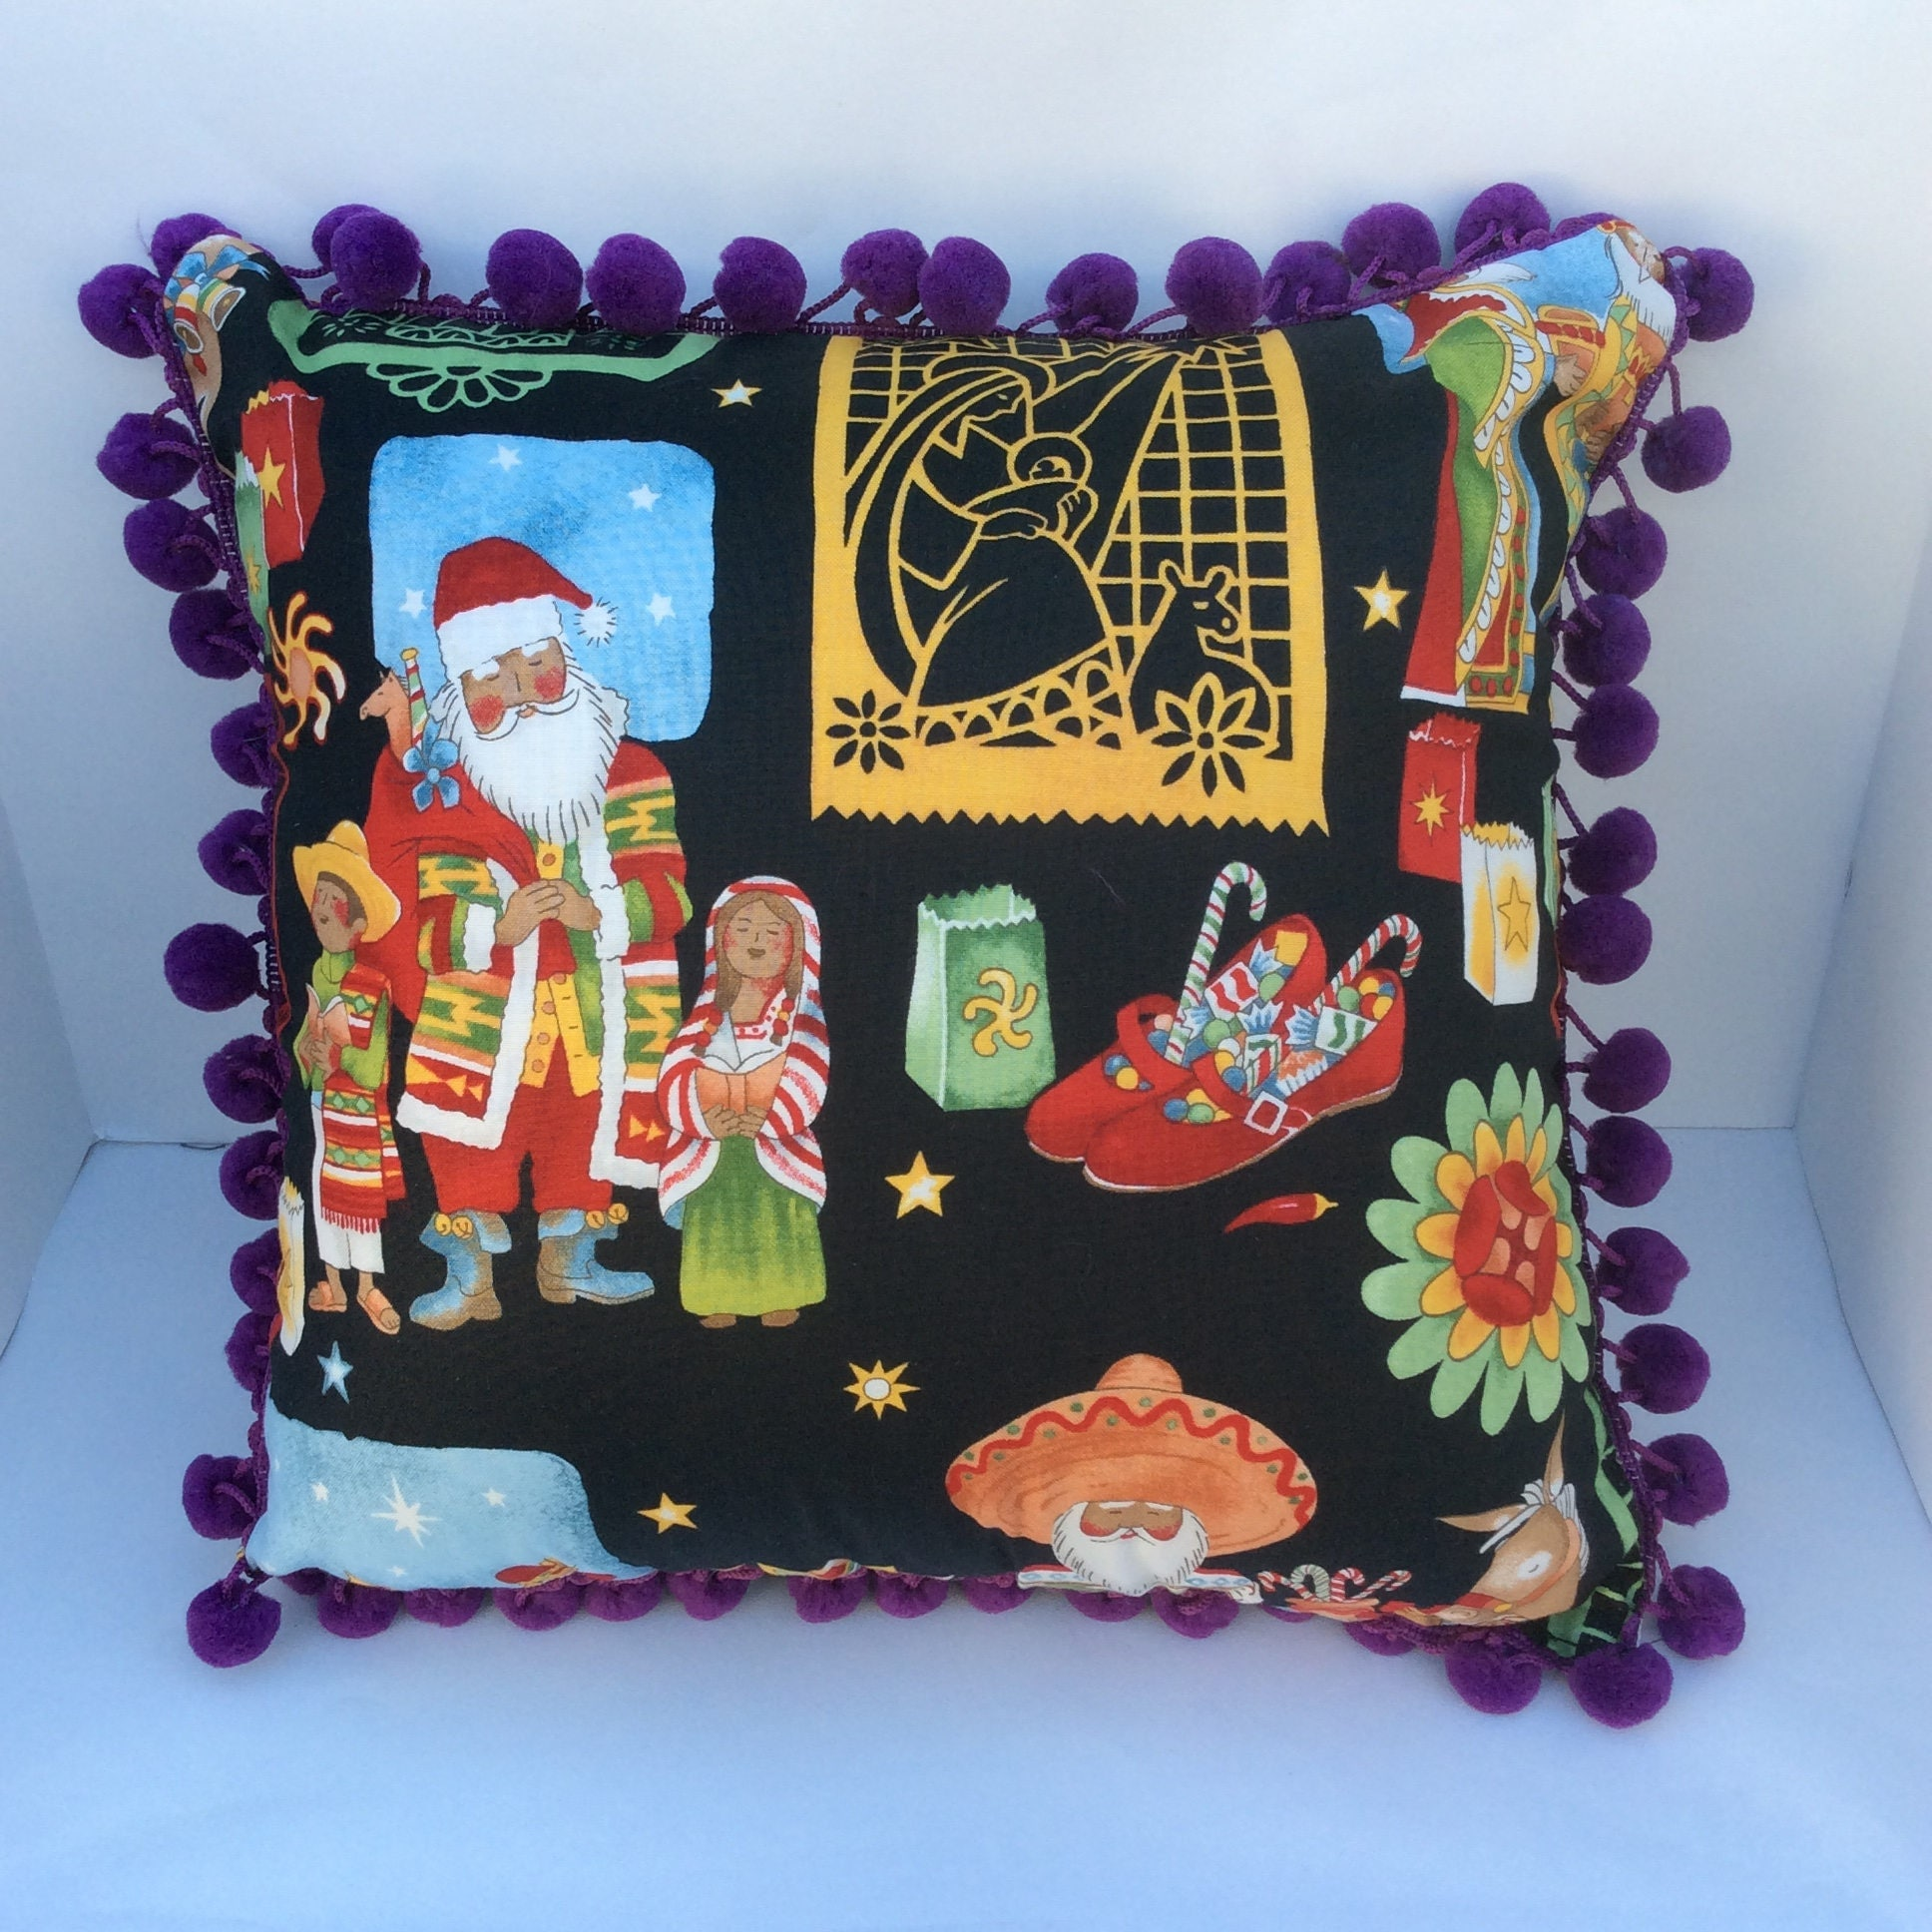 Christmas Decorative Pillow Cases : Holiday pillow Christmas pillow holiday decor pillow case